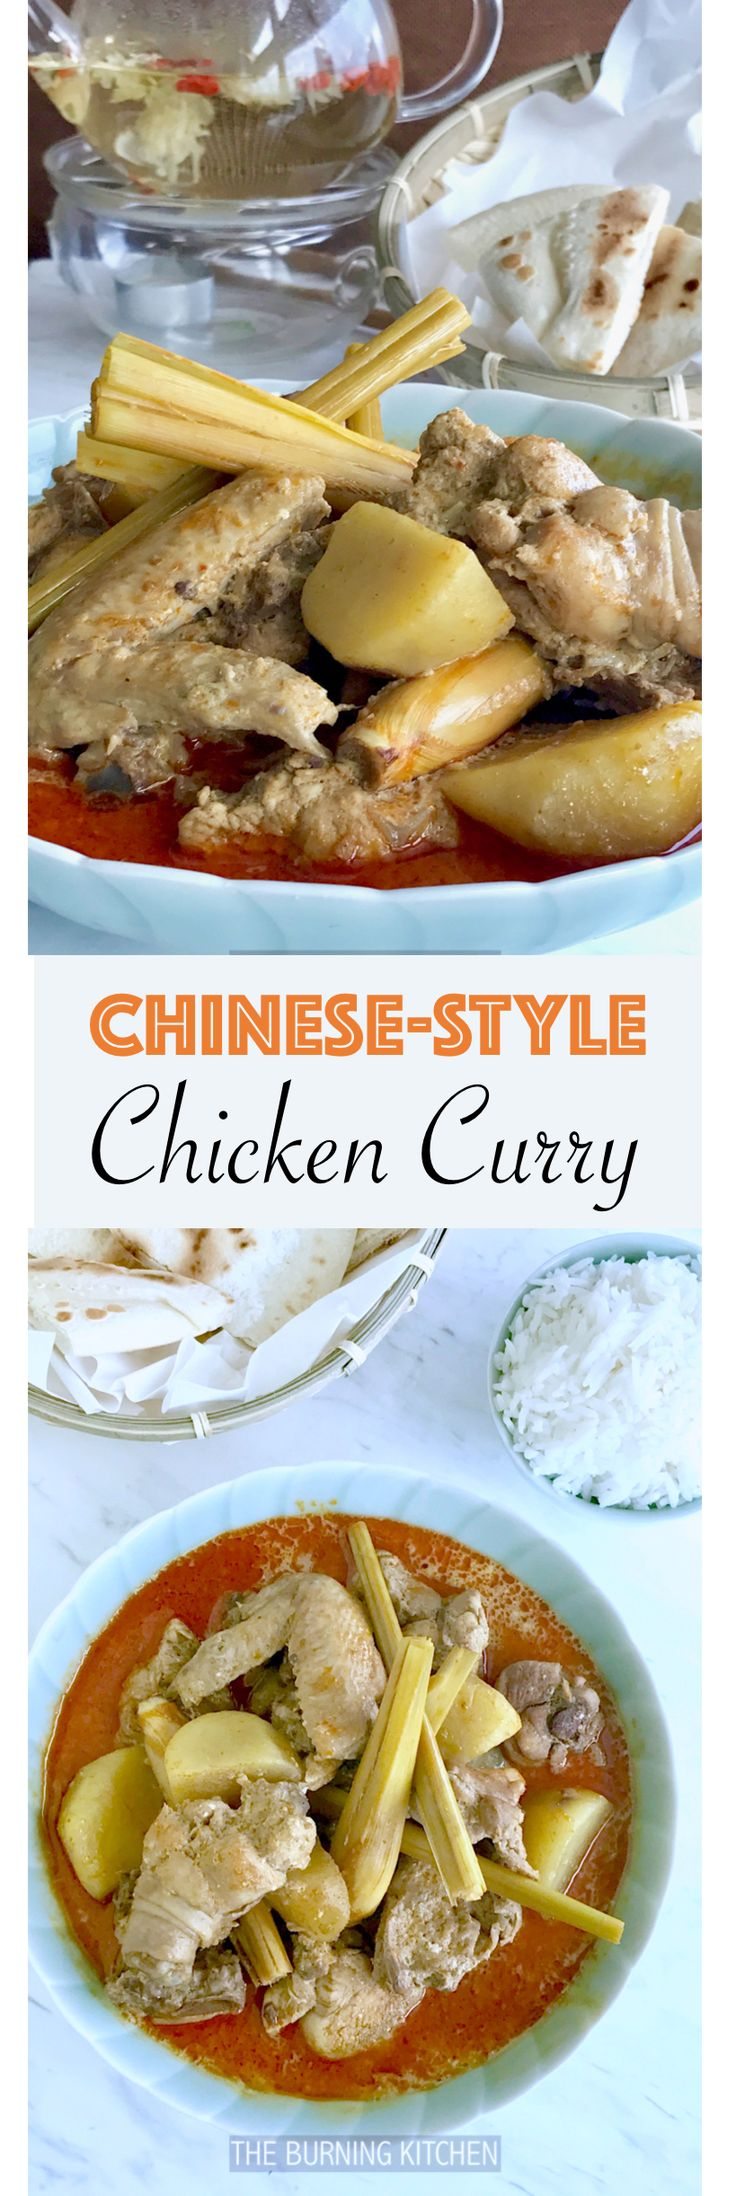 Steaming hot chinese-styled chicken curry goes perfectly with french loaf or white rice!